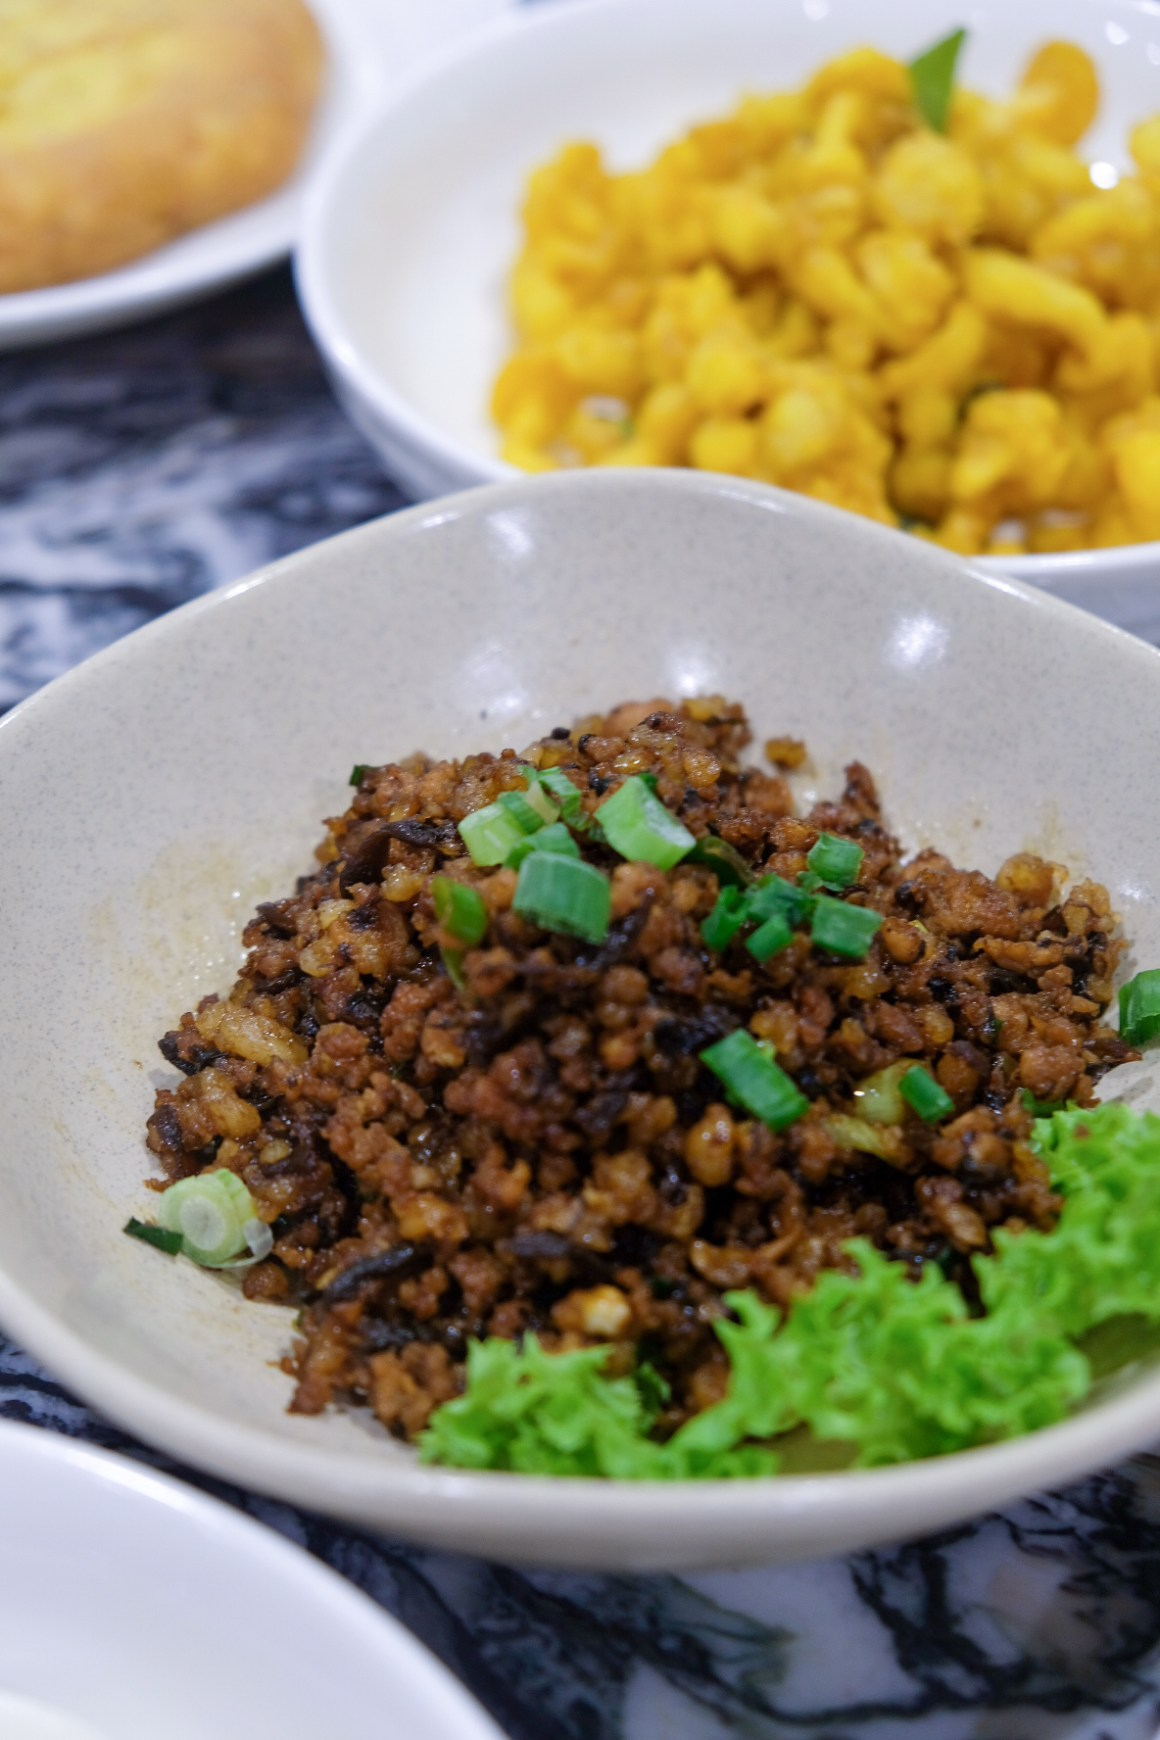 Goldleaf Restaurant Celebrates 48th Anniversary With $5.40 dishes - Fried Minced Pork with Olives